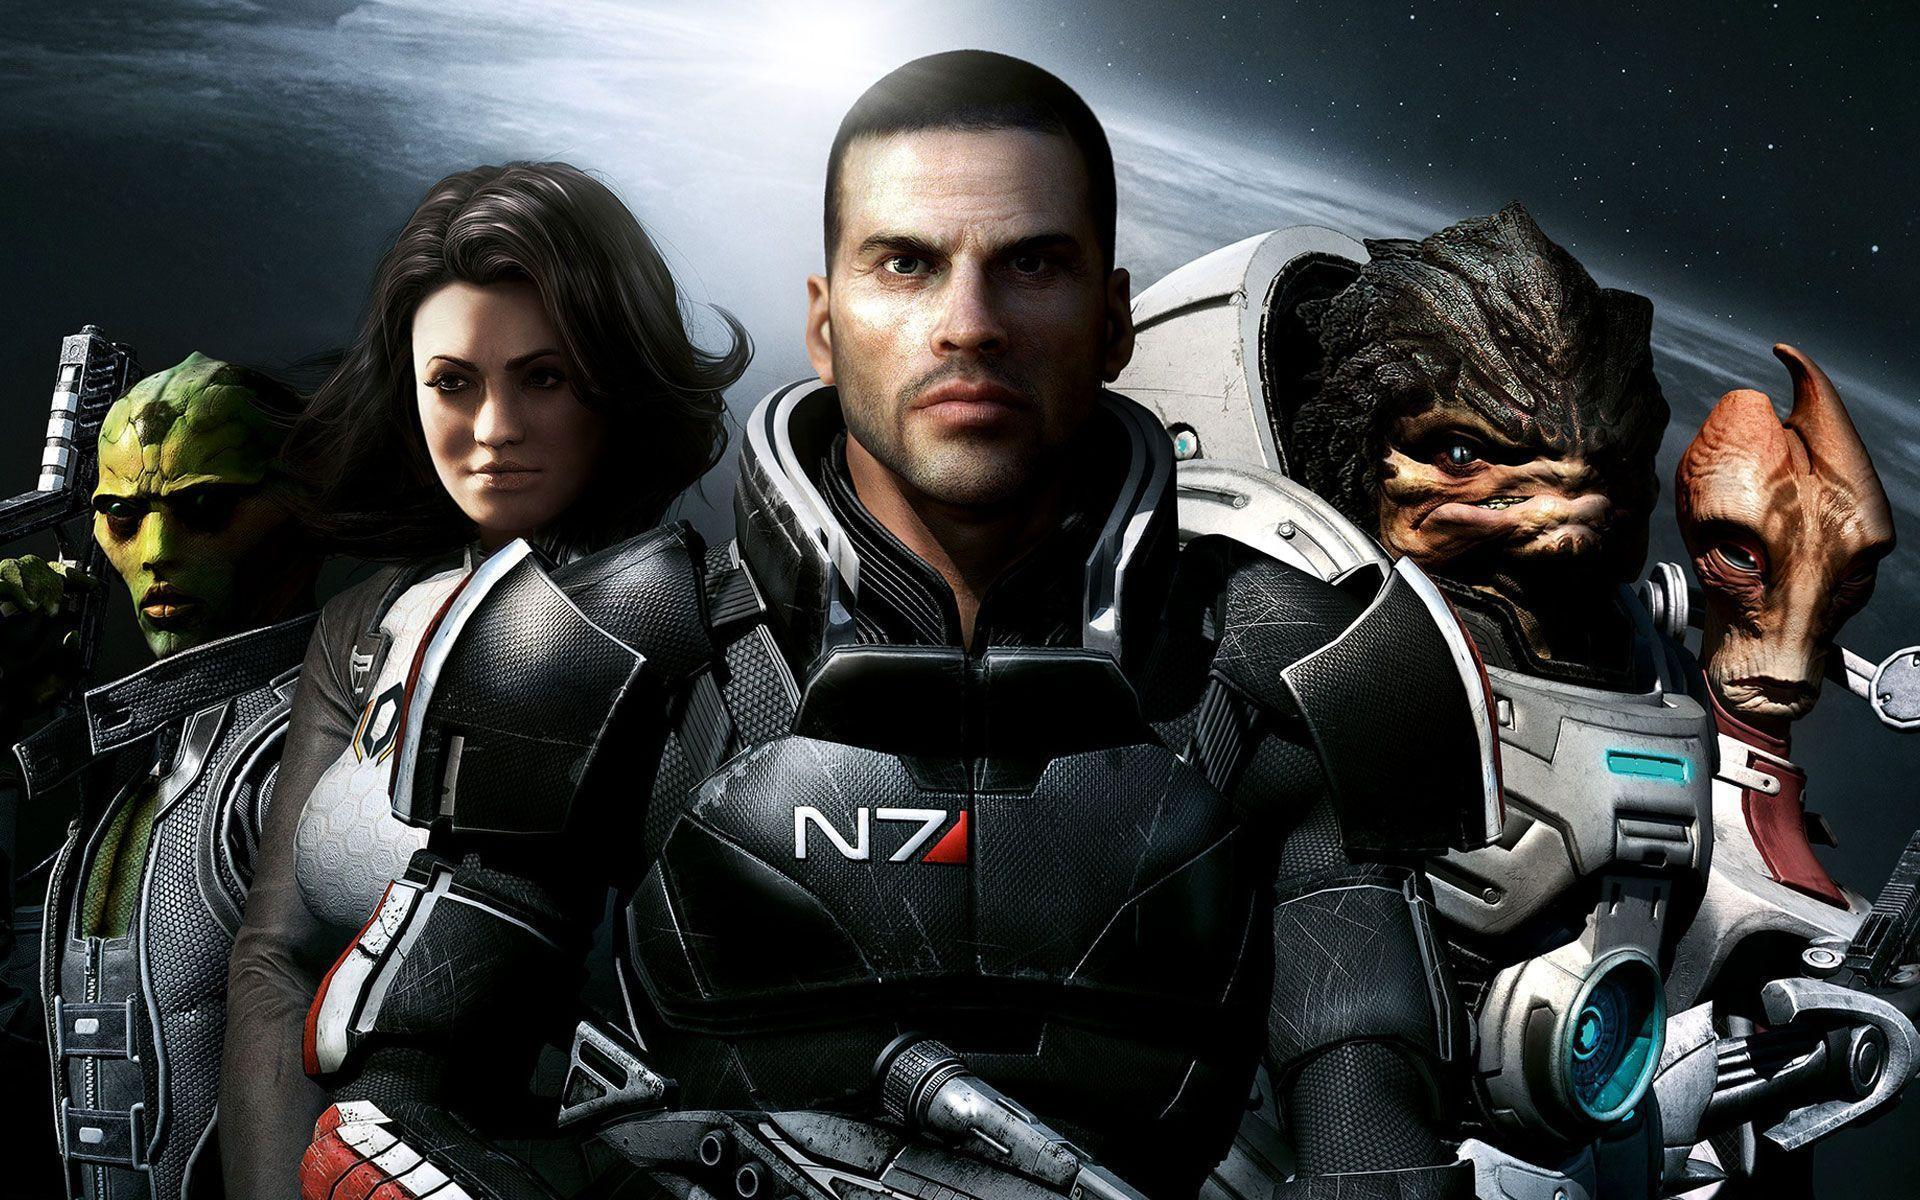 Mass Effect 2 Wallpapers and Pictures For PS3